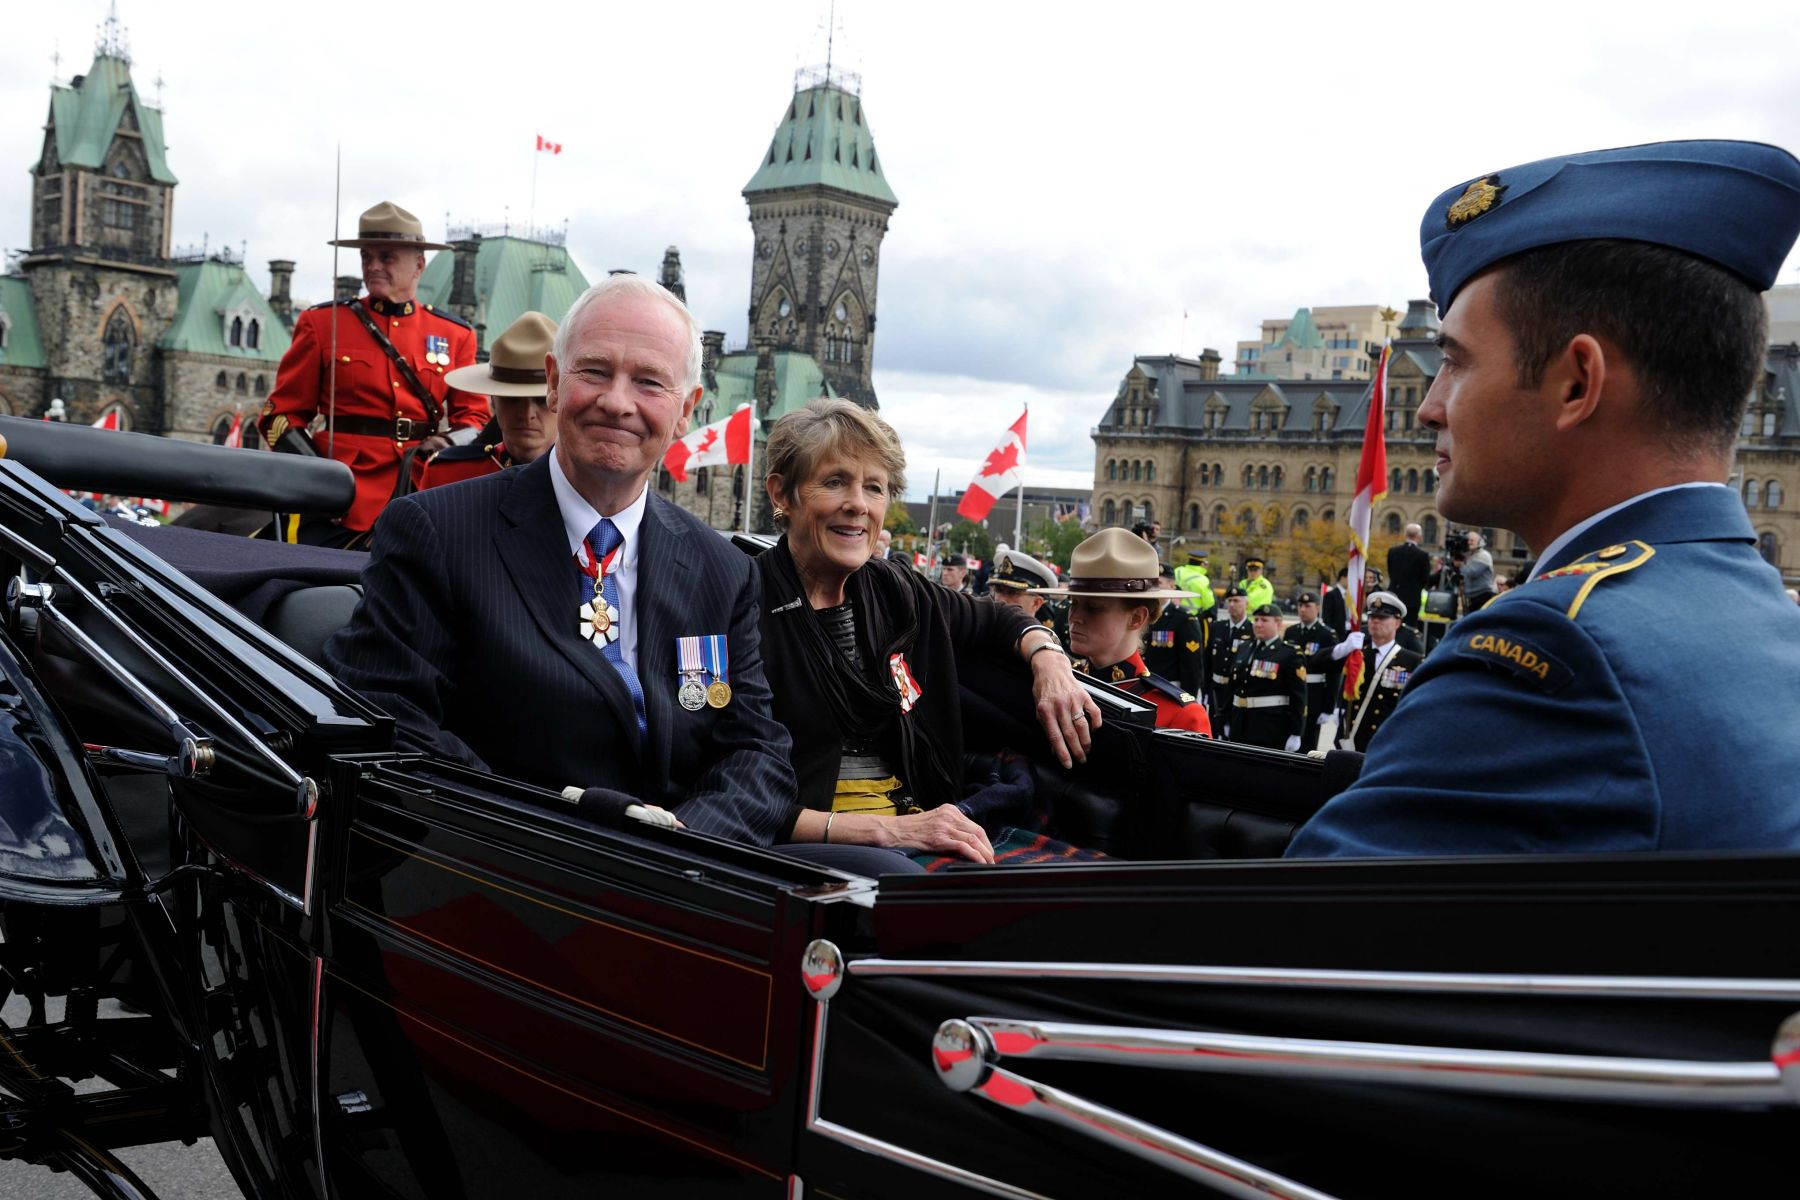 Following the installation ceremony, Their Excellencies left the Parliament in a landau.